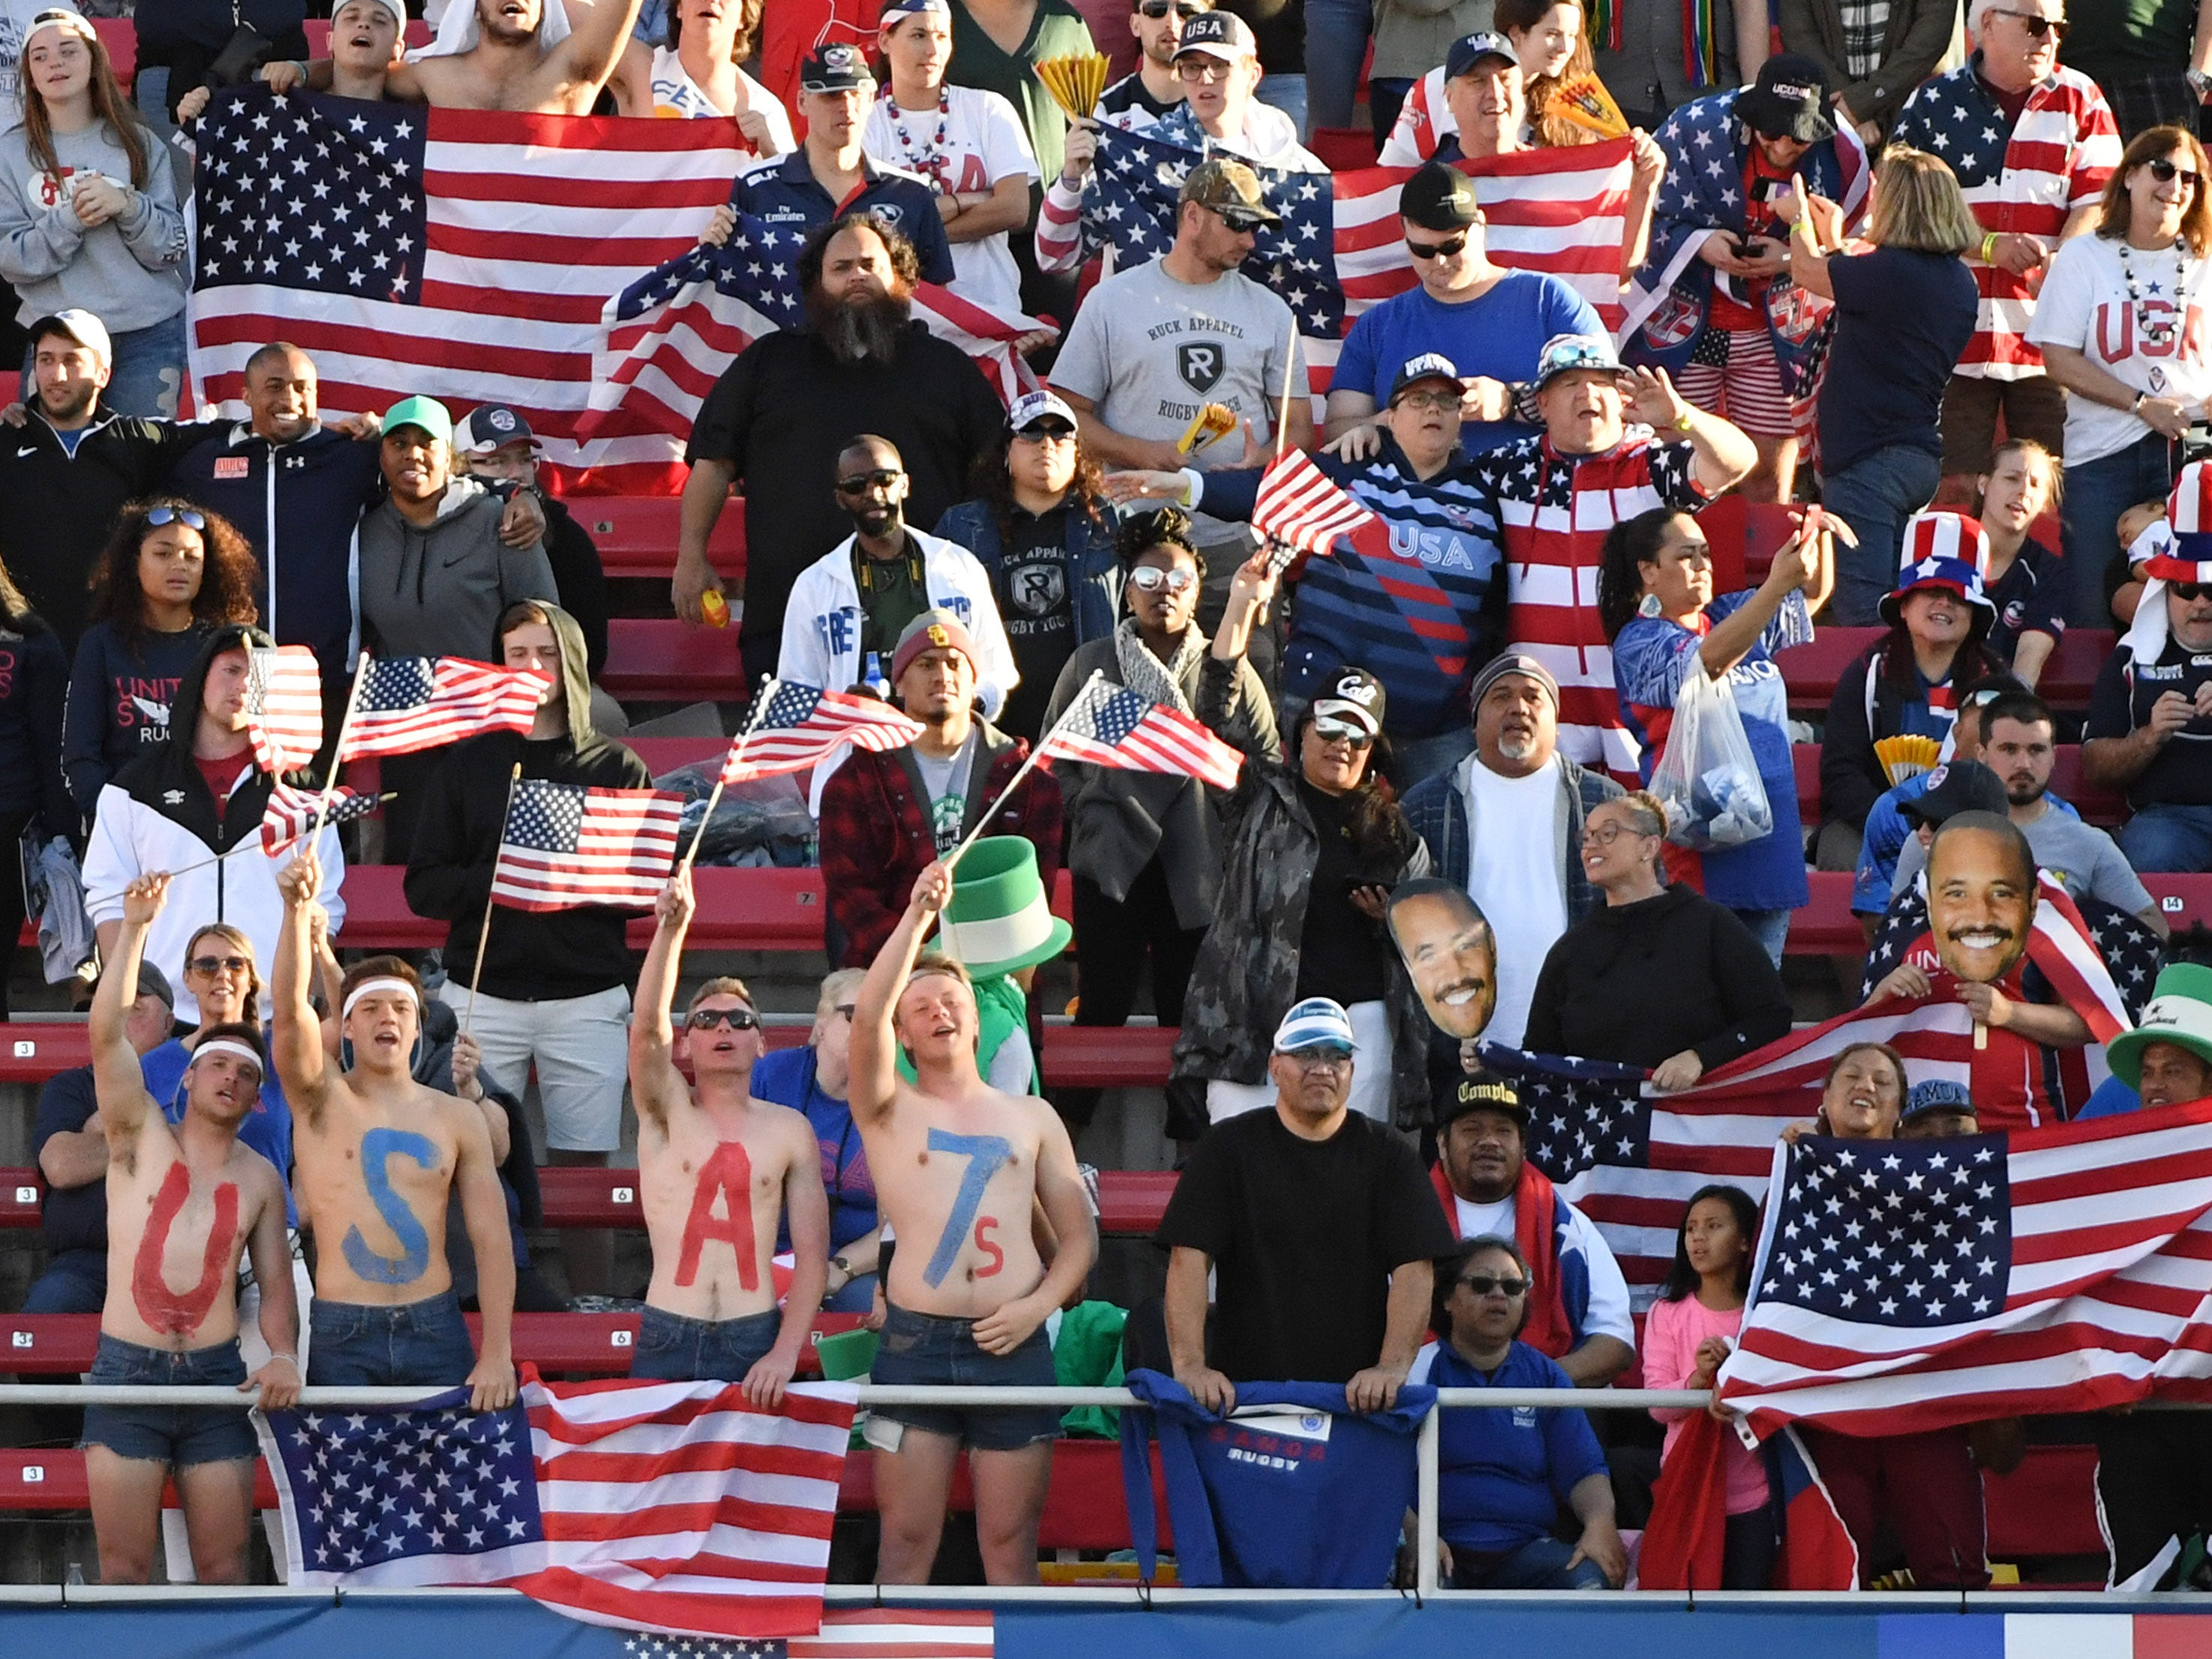 United States fans cheer in the stands during the team's Cup Final match against Samoa during the USA Sevens Rugby tournament at Sam Boyd Stadium on March 3, 2019 in Las Vegas, Nevada. The United States won 27-0.  A. Jon Prusmack revived the USA Sevens, moved it to Las Vegas and grew it to one of the most popular tour stops on the international calendar.